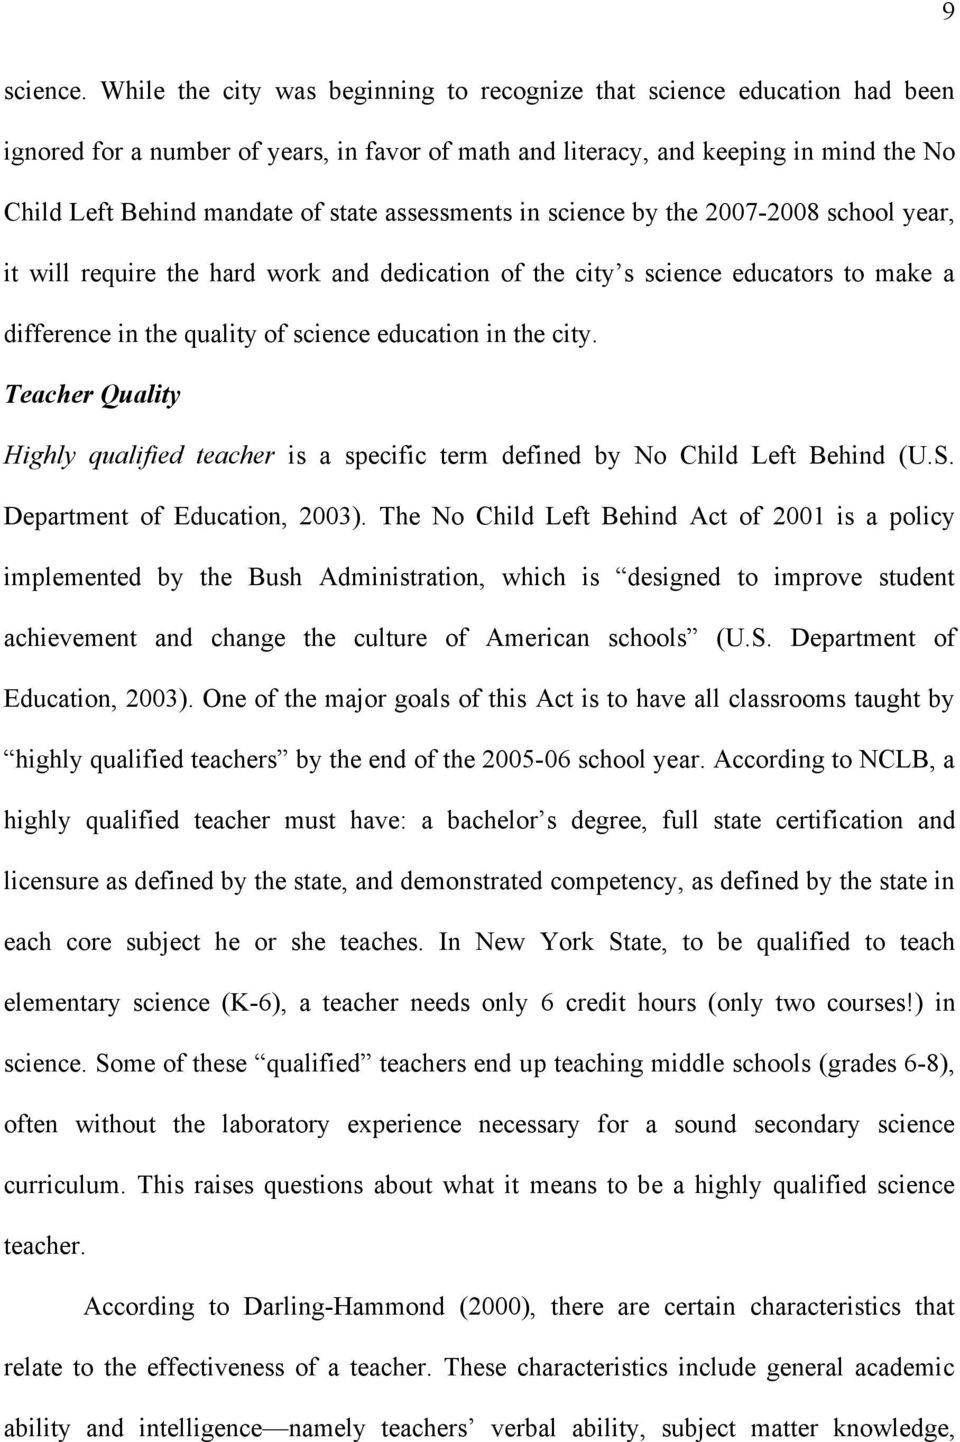 assessments in science by the 2007-2008 school year, it will require the hard work and dedication of the city s science educators to make a difference in the quality of science education in the city.